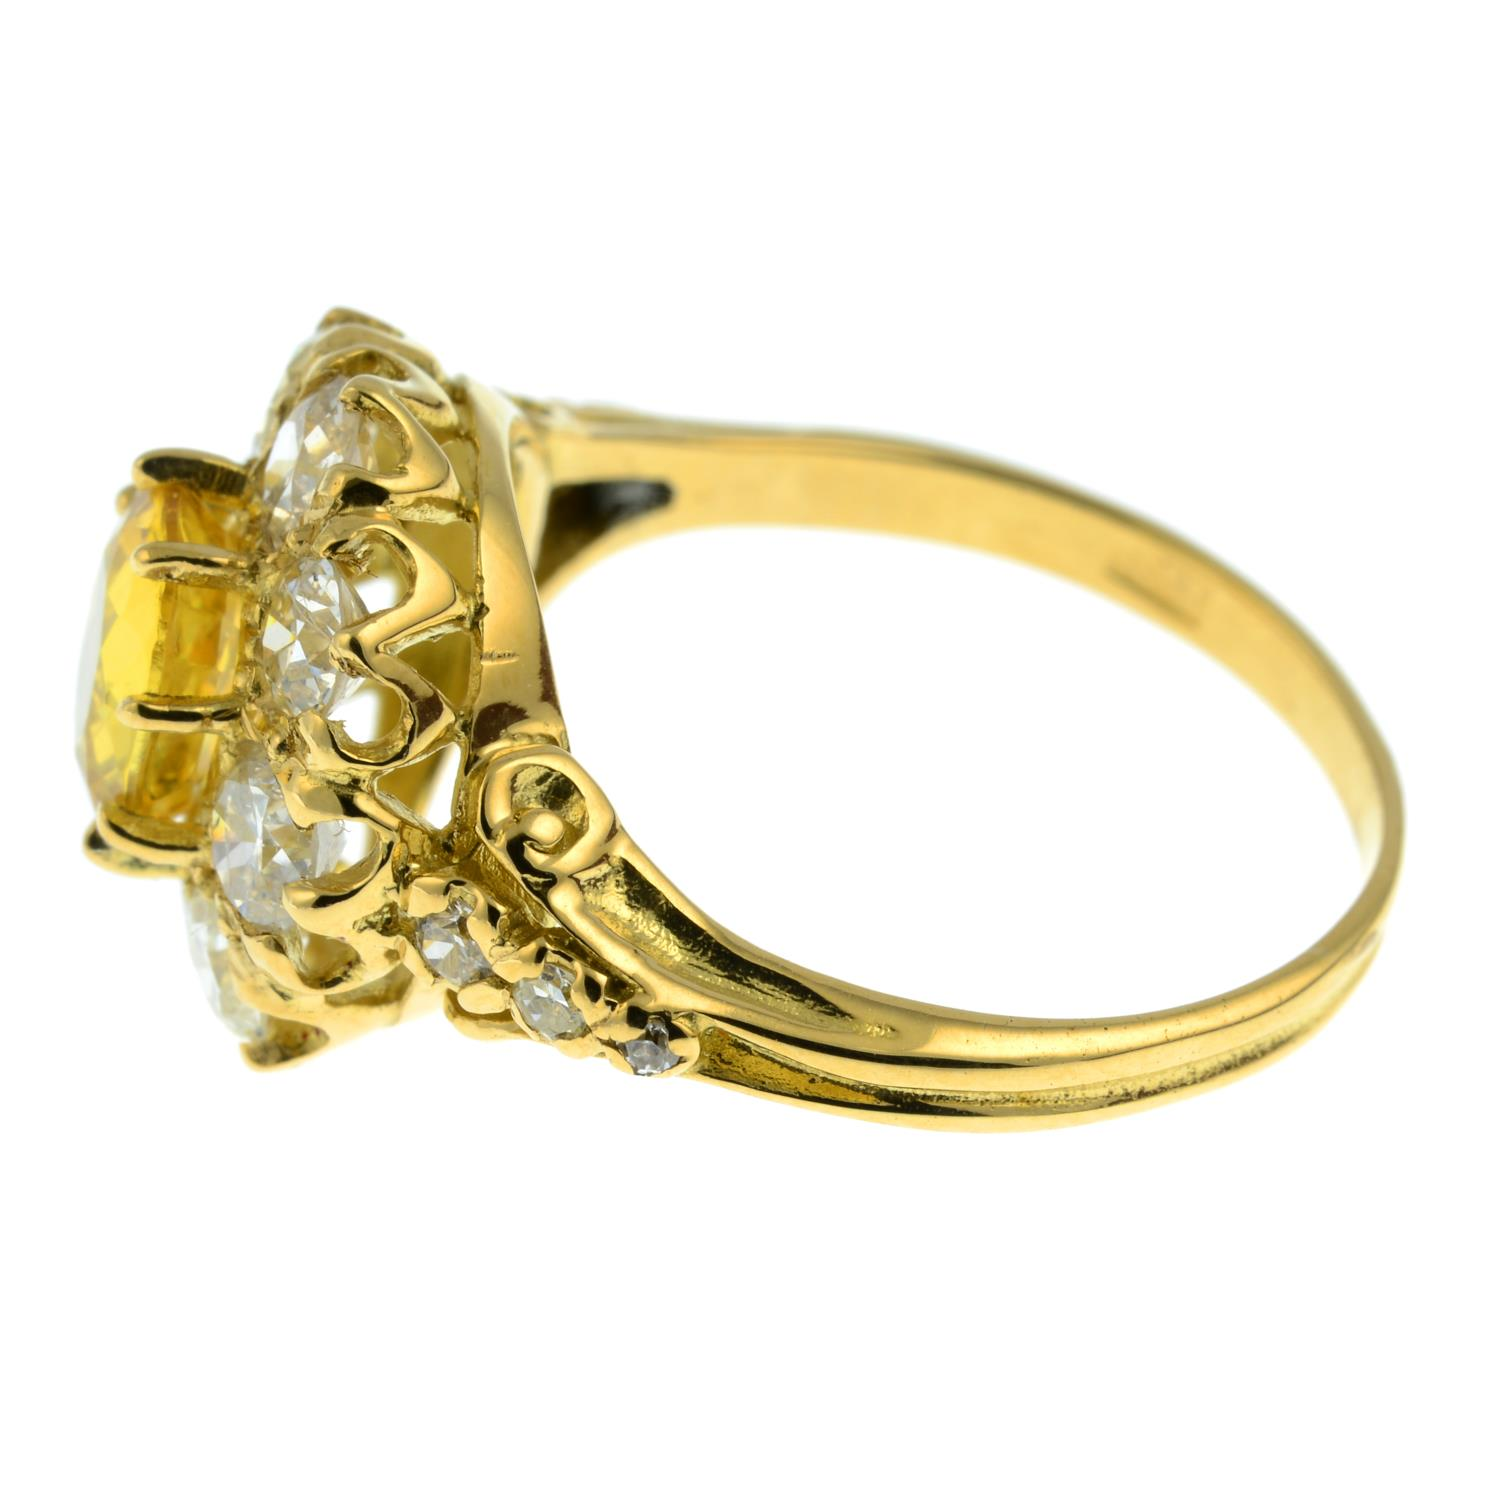 A yellow sapphire and old-cut diamond cluster ring.Sapphire calculated weight 1.05cts, - Image 4 of 6